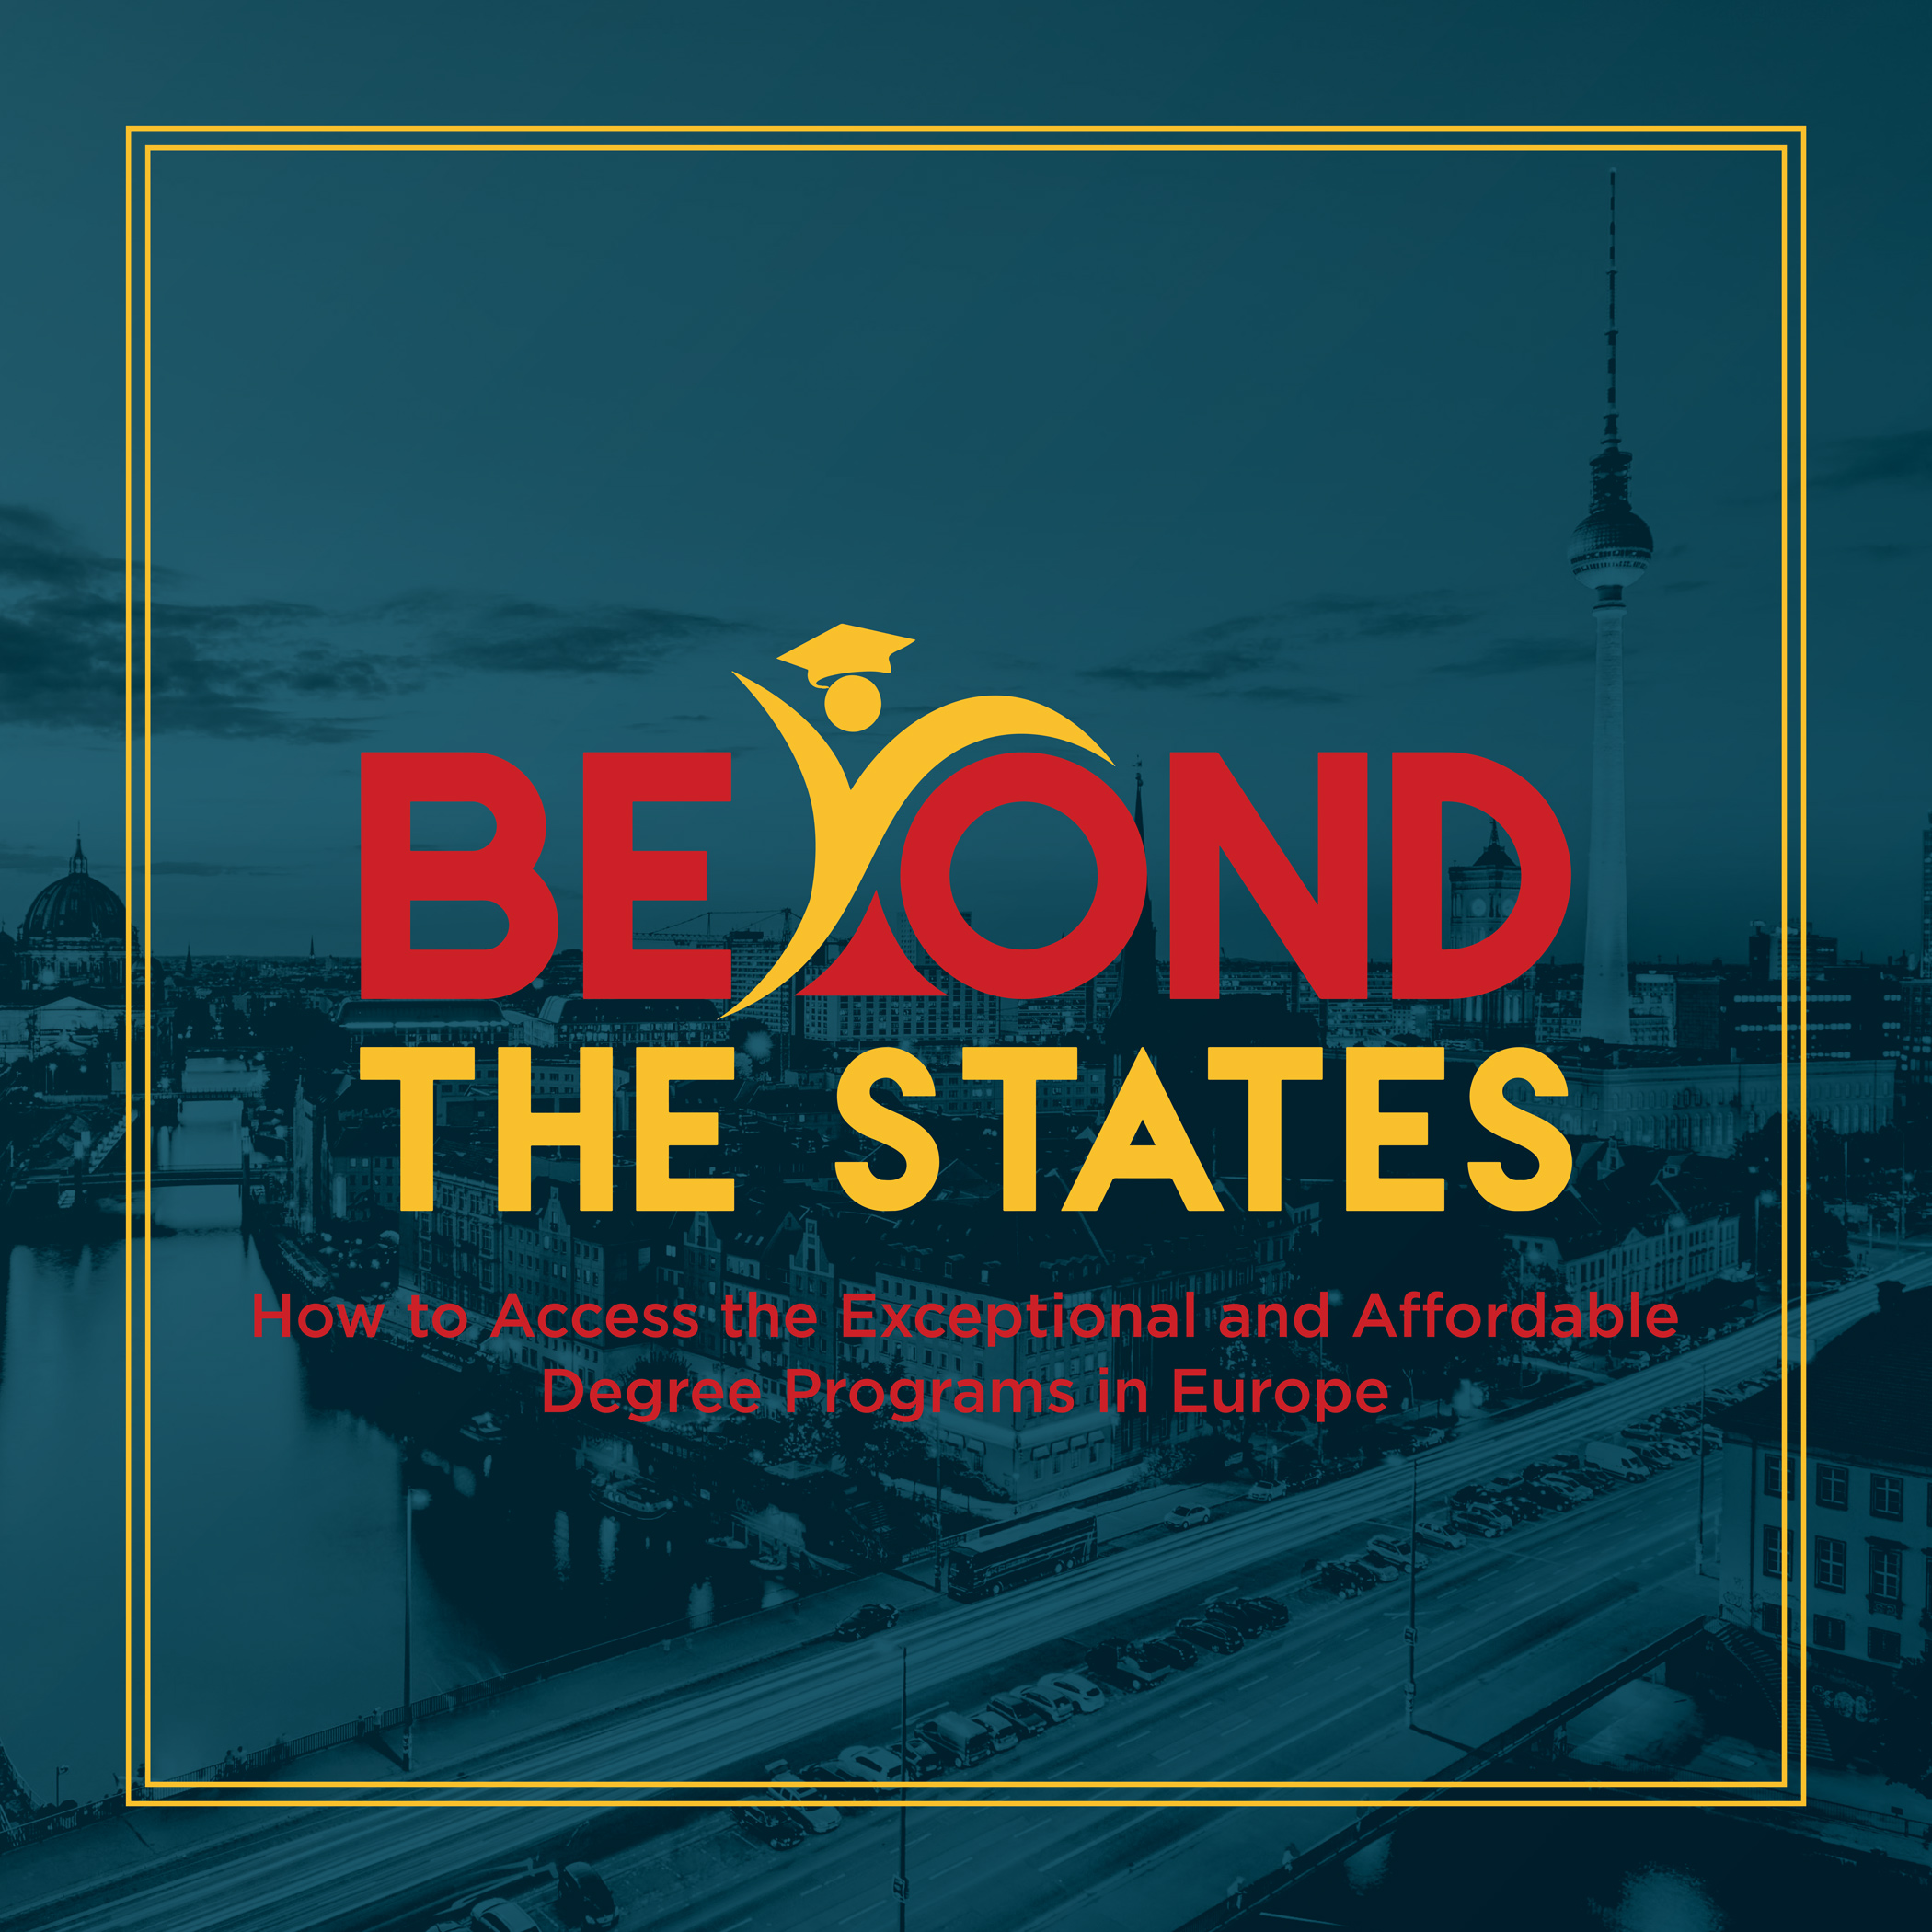 Beyond the States: College in Europe